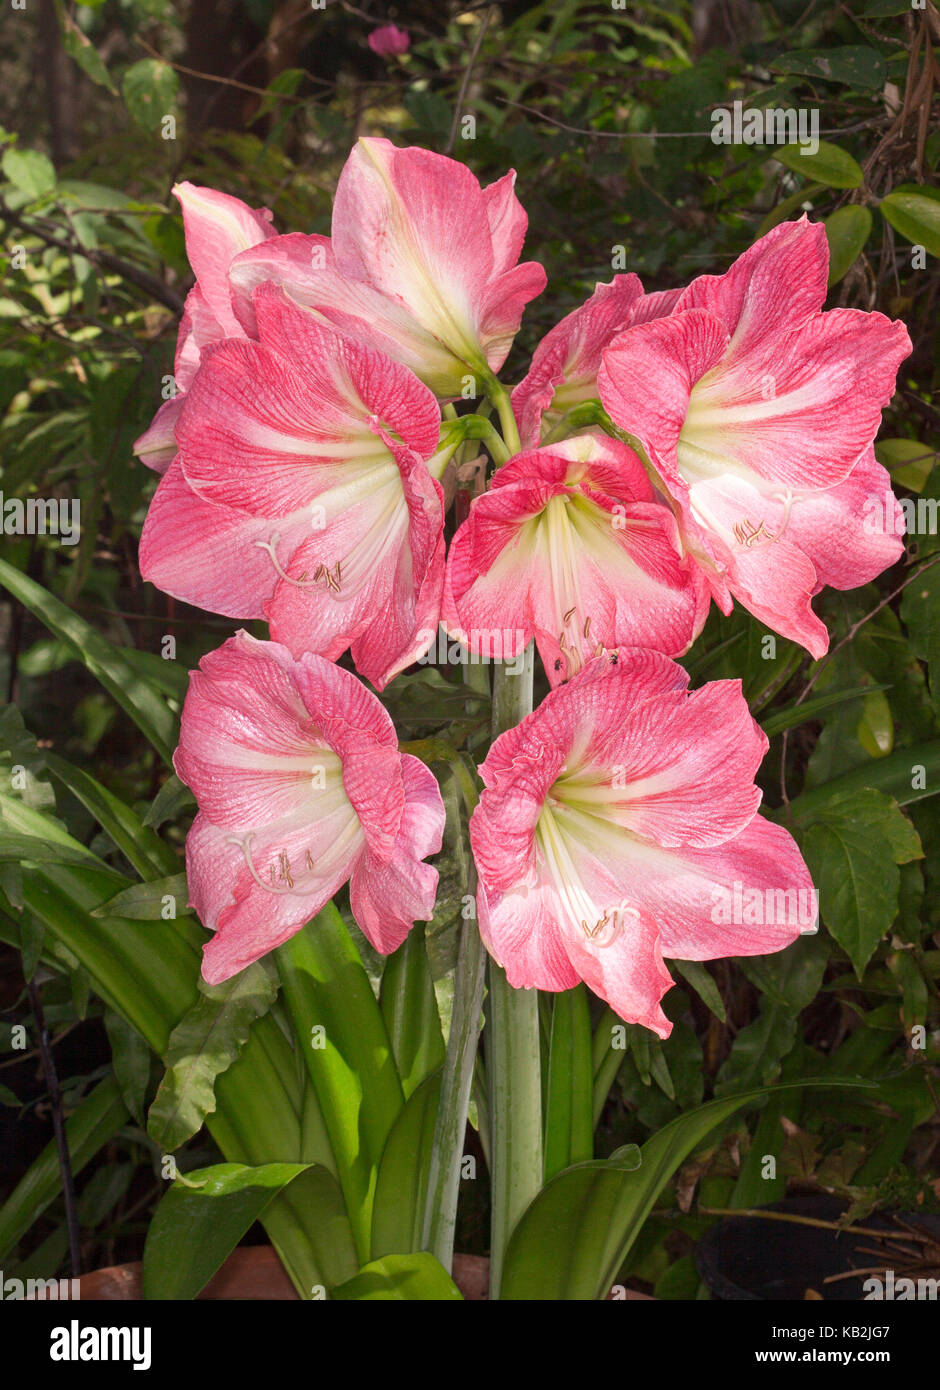 Cluster Of Huge Pink Flowers Streaked With White Of Hippeastrum